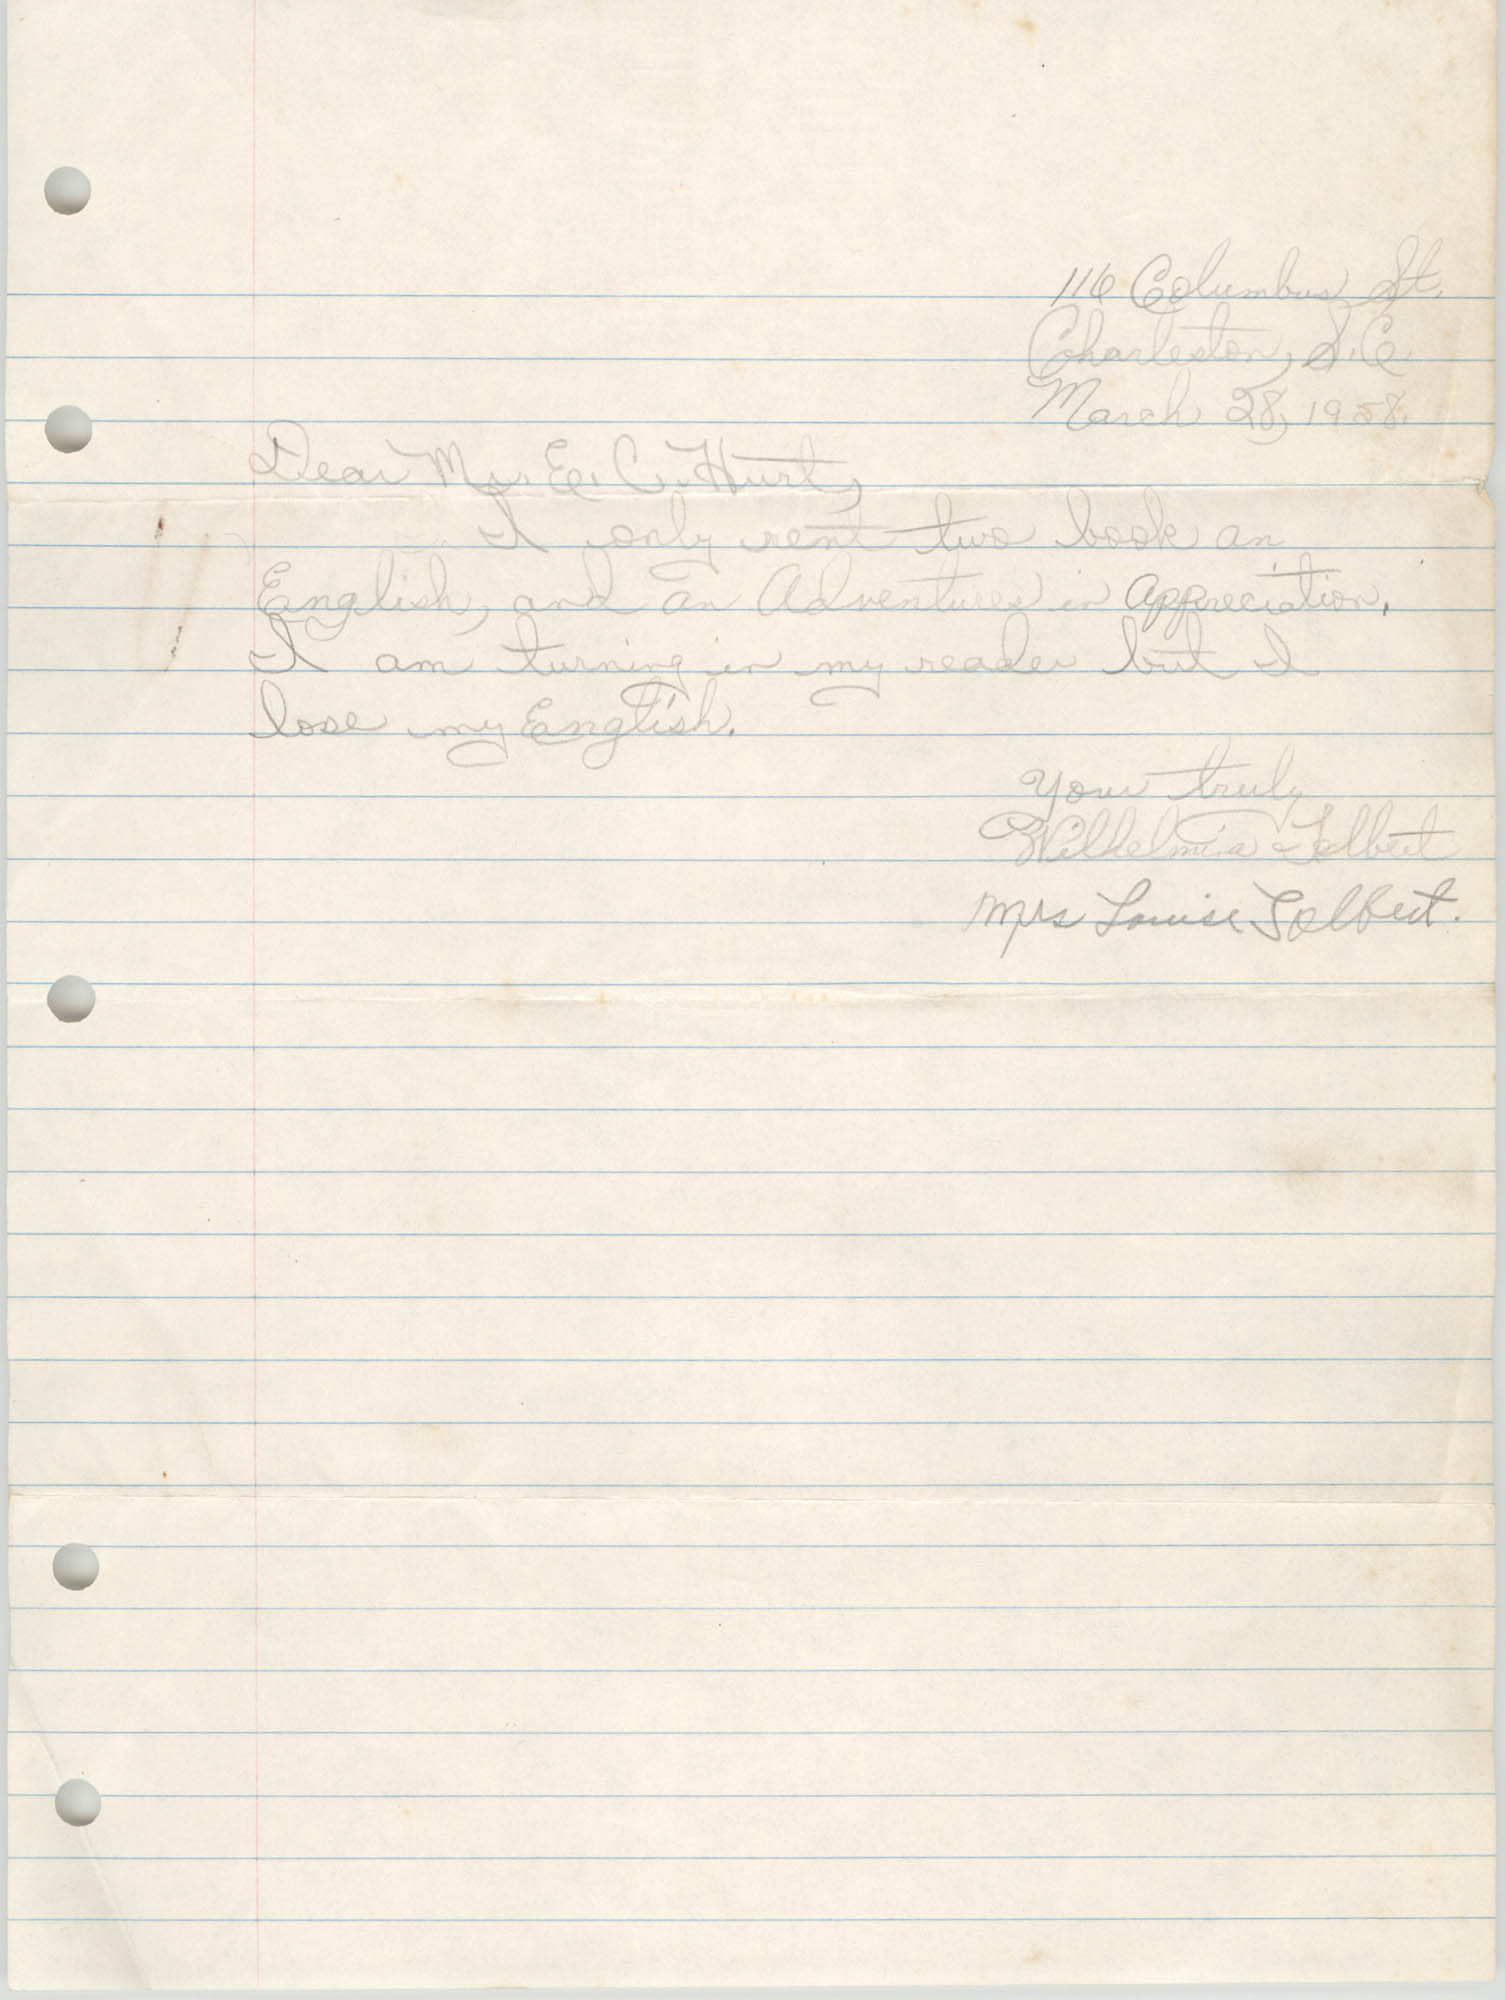 Letter from Wilhelmia Tolbert and Louise Tolbert to Eugene C. Hunt, March 28, 1958